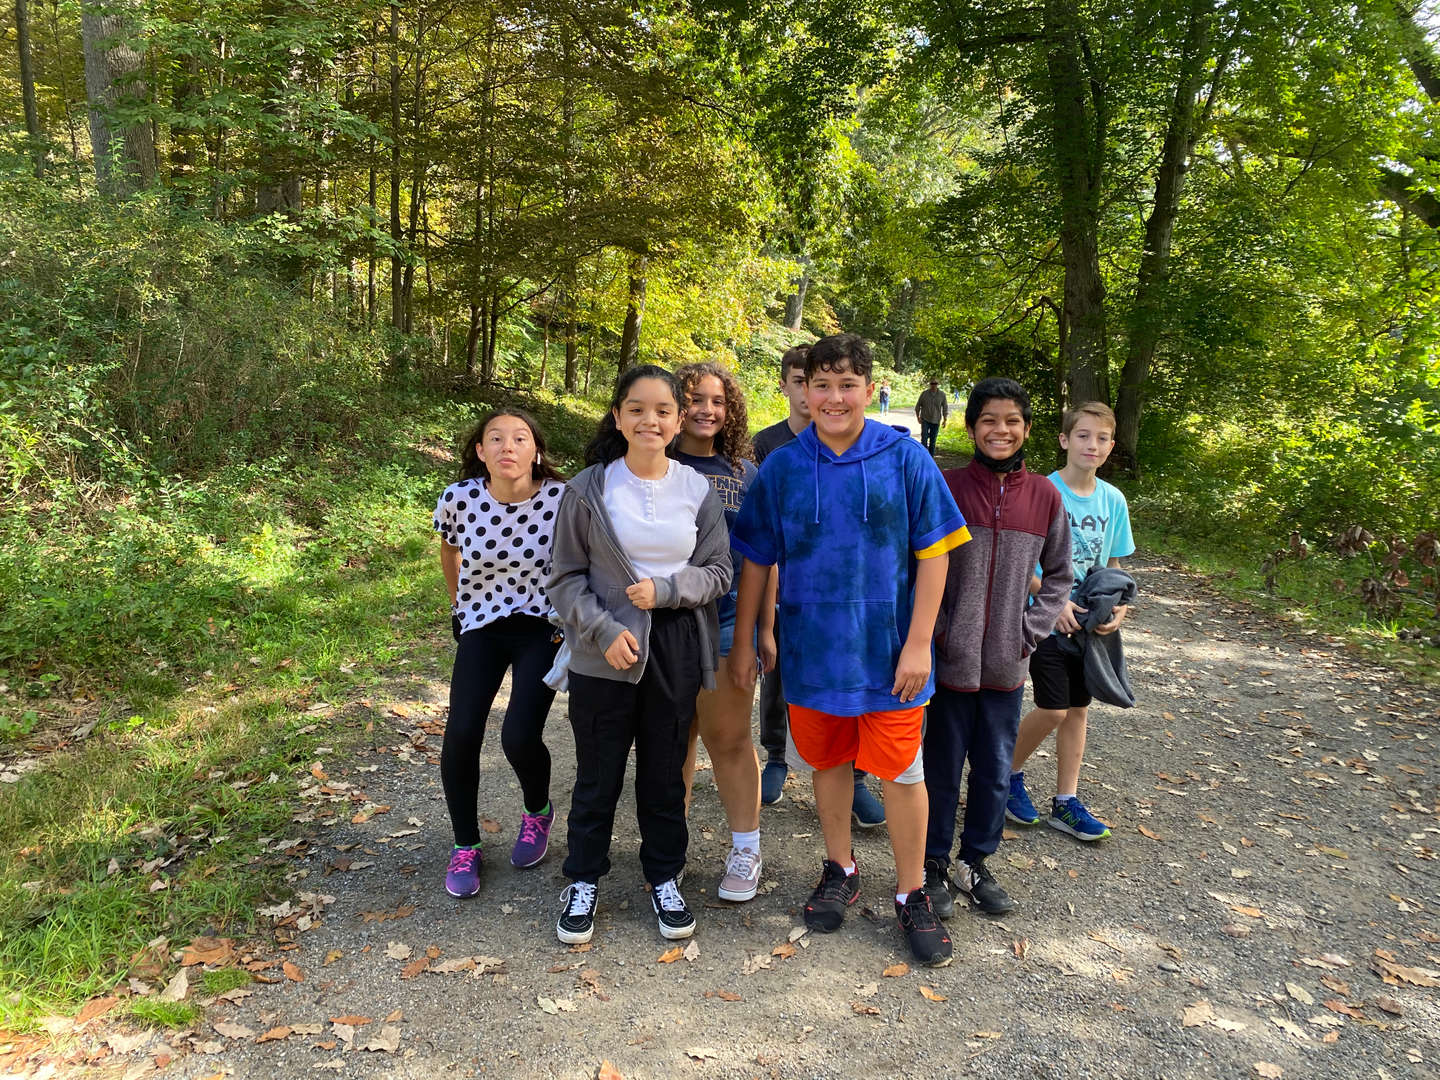 A group of students walks on a trail at the Rockefeller State Park Preserve's Swan Lake.